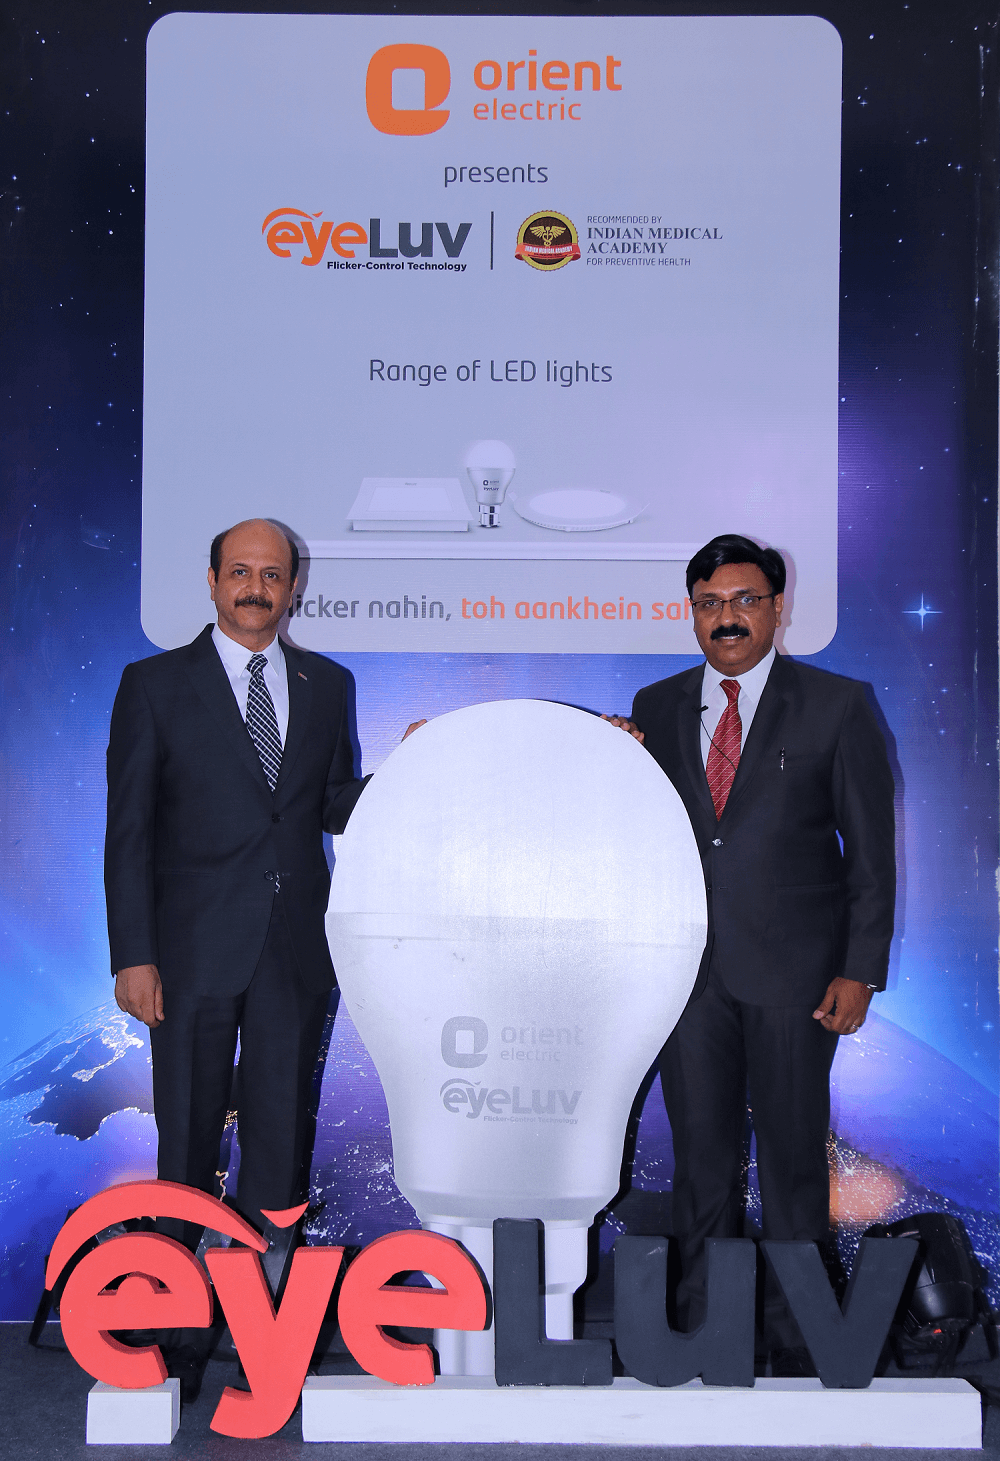 From Left to Right - Rakesh Khanna, MD & CEO, Orient Electric Limited & Puneet Dhawan, Exec. VP, Orient Electric Limited_Lo